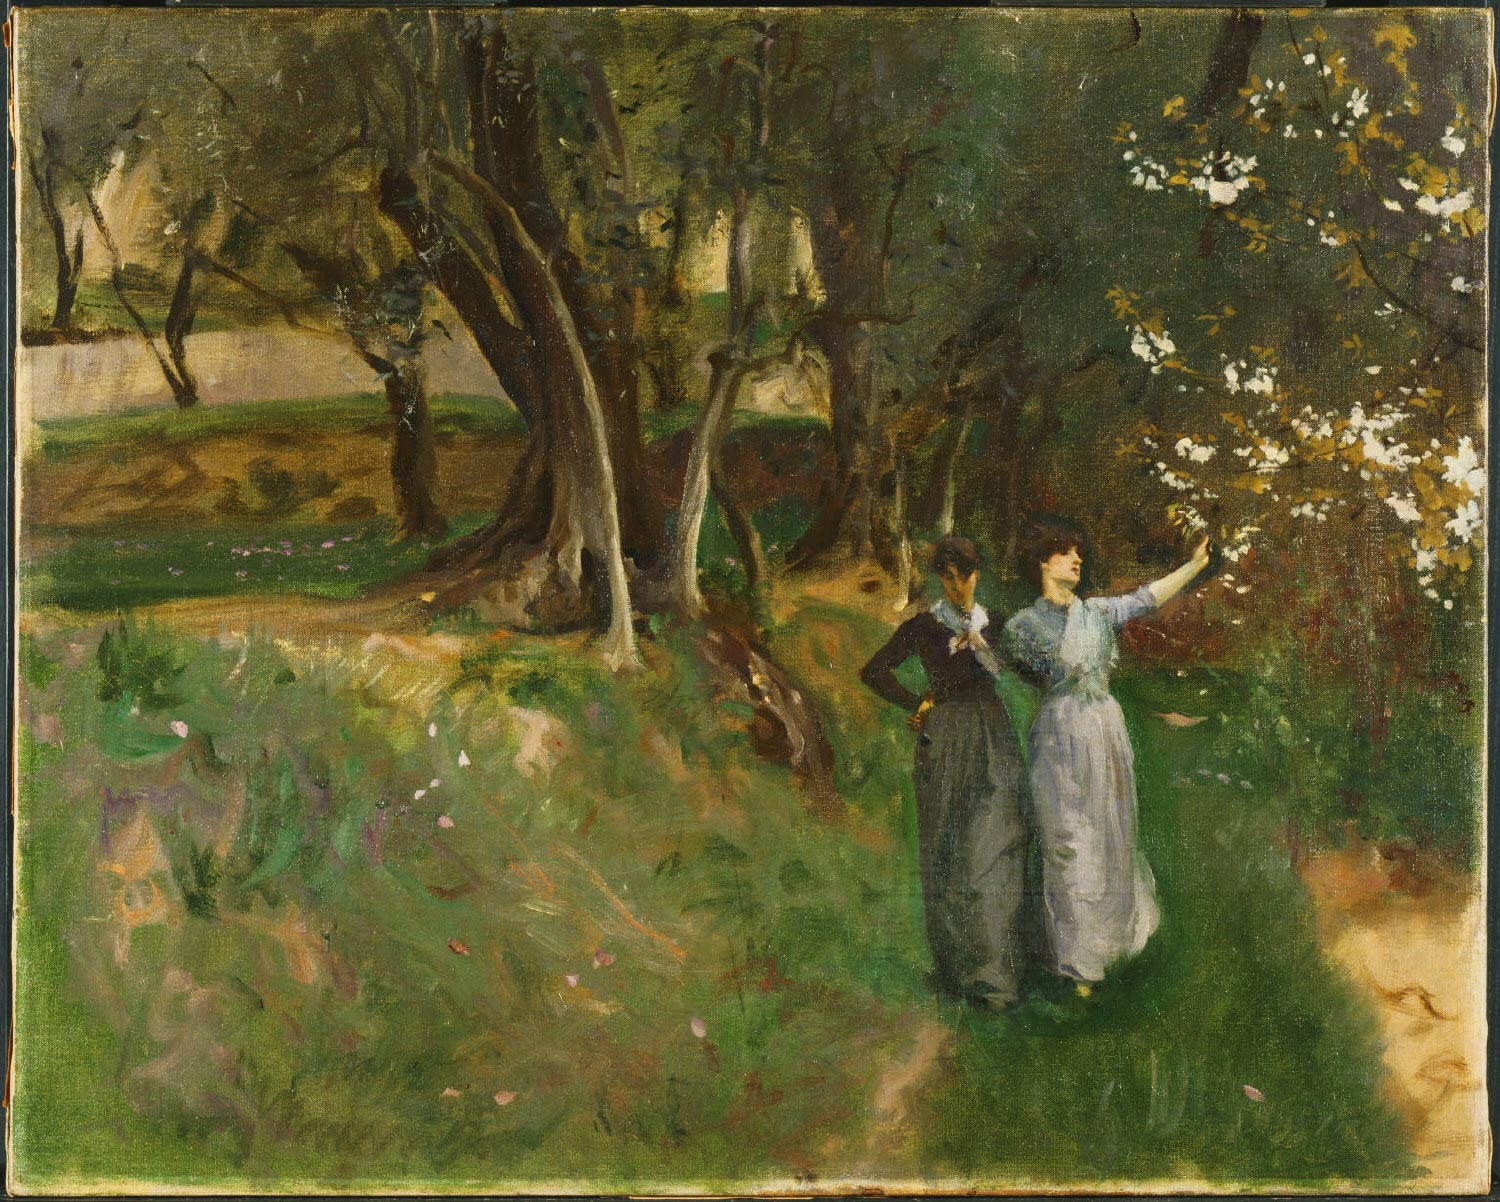 Landscape with Women in Foreground